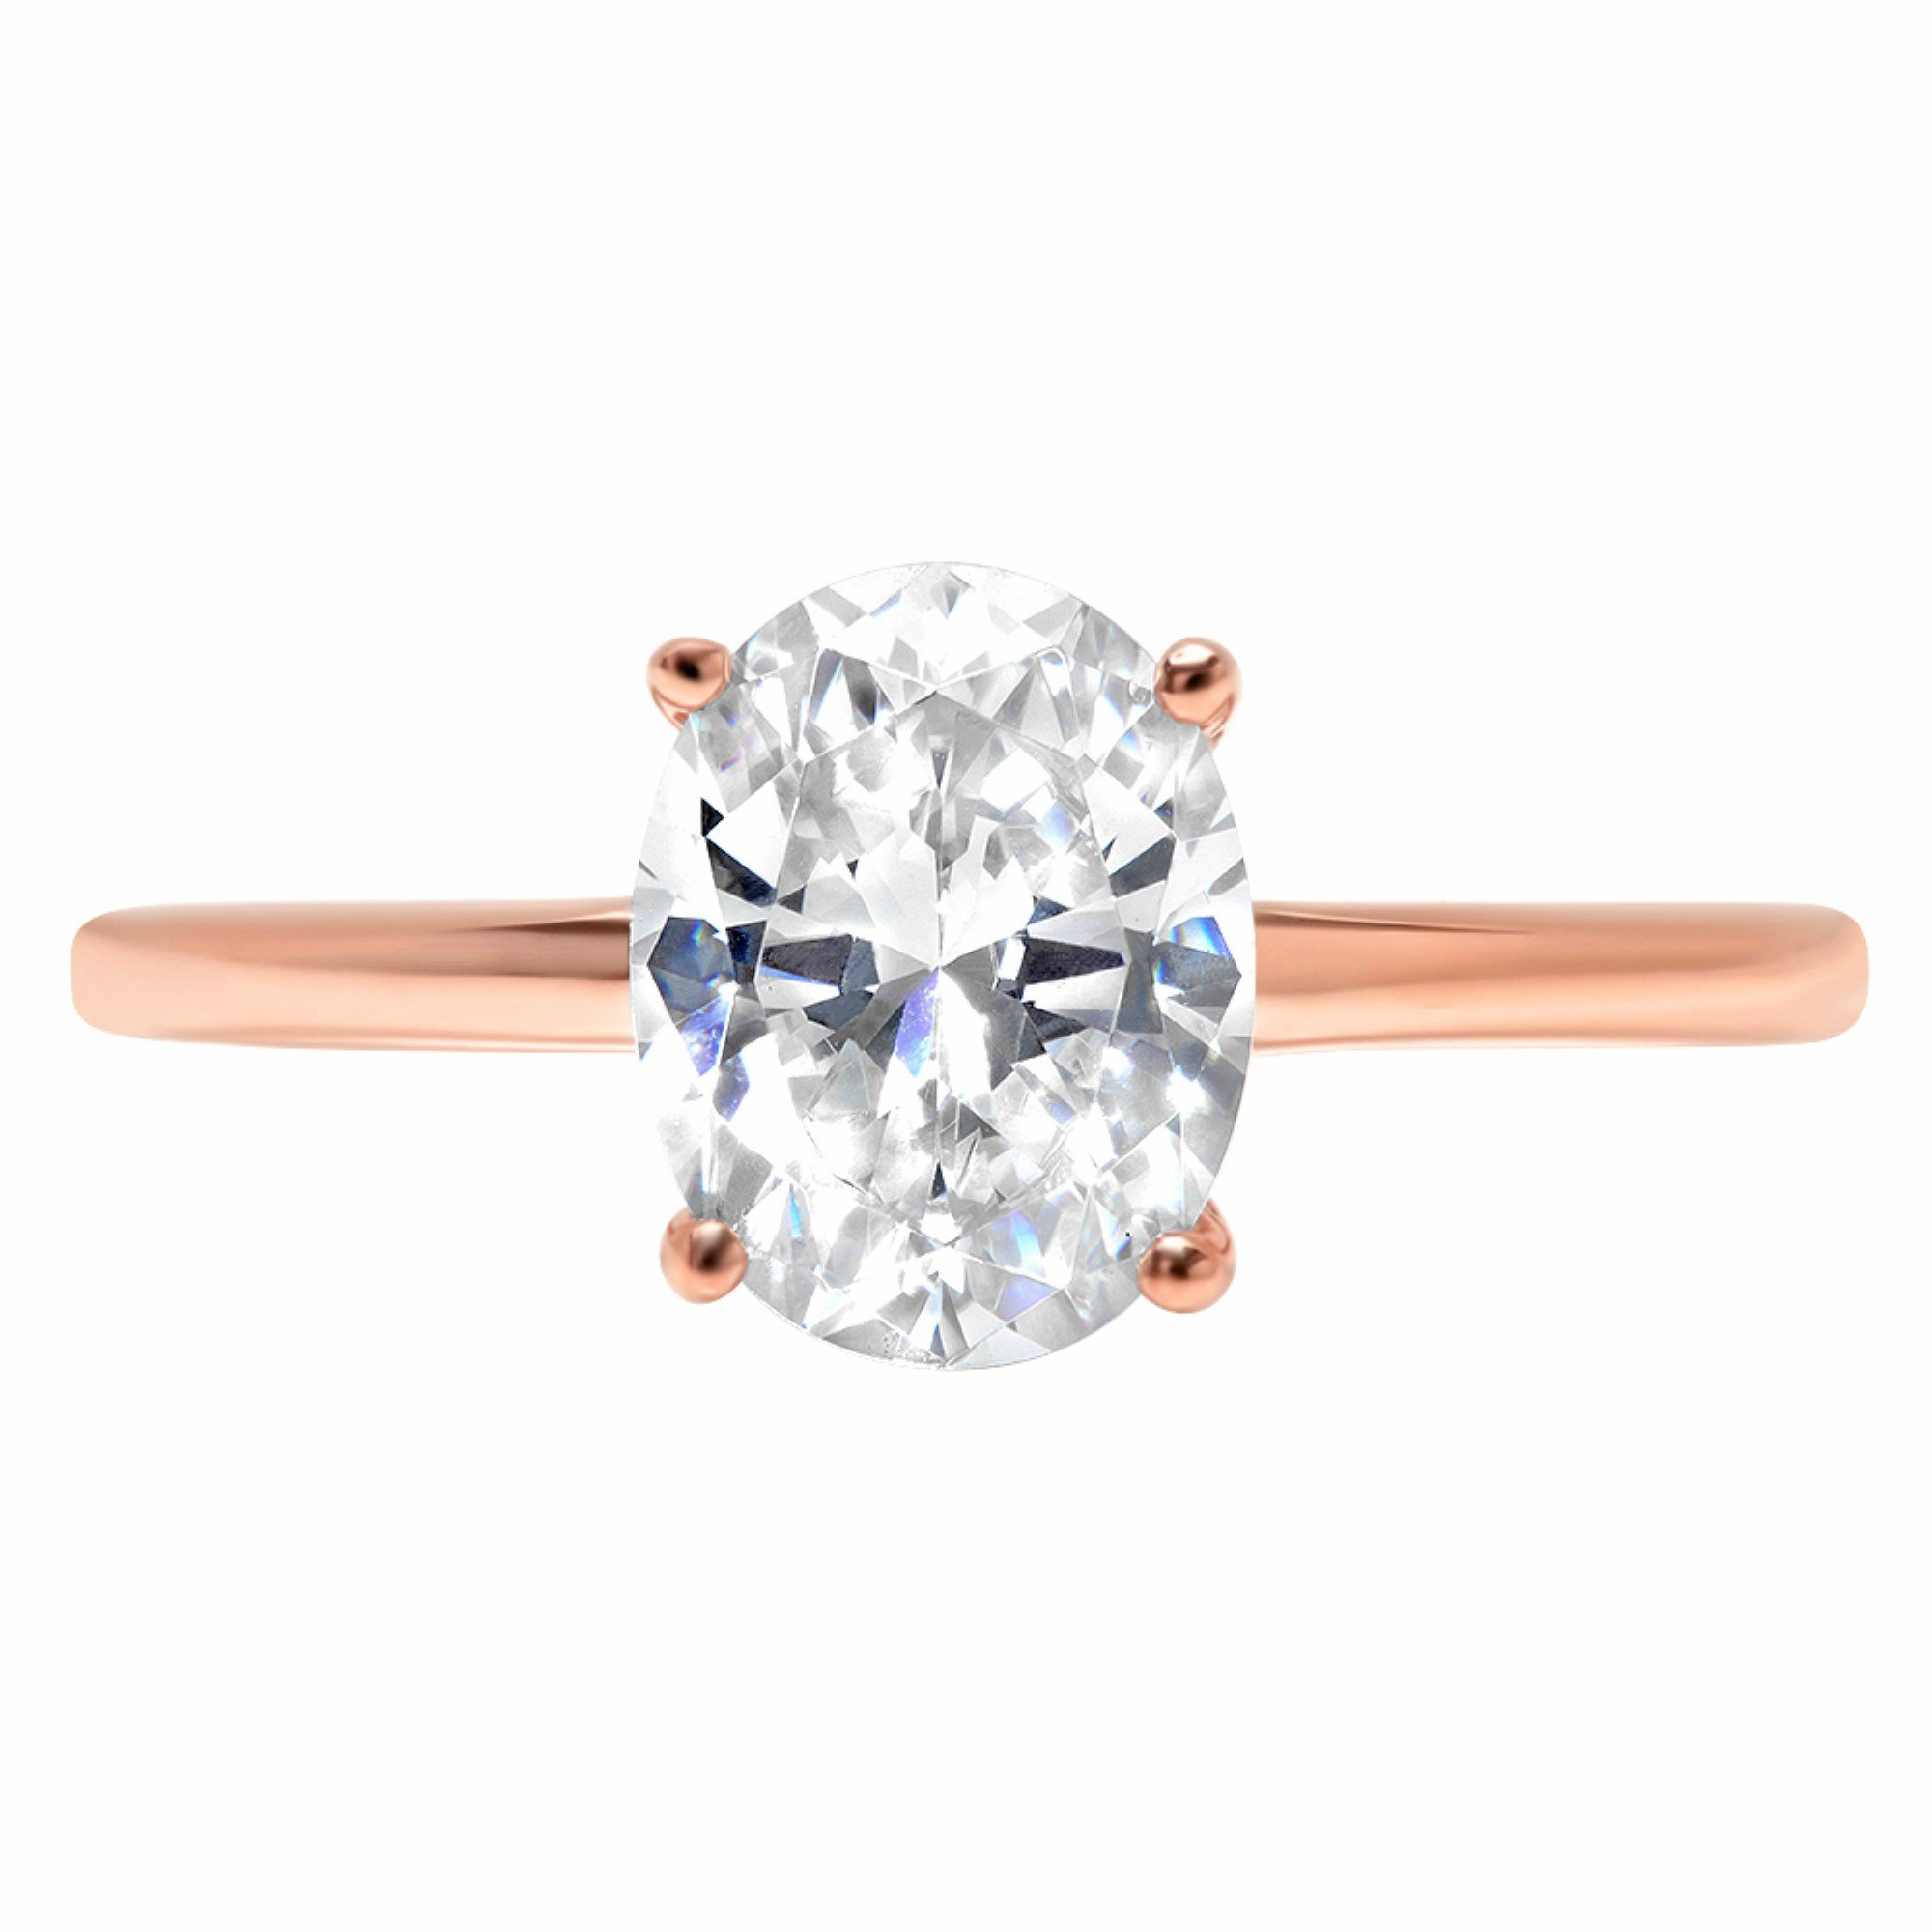 Oval Brilliant Cut Classic Solitaire Designer Wedding Bridal Statement Anniversary Engagement Promise Ring Solid 14k Rose Gold, 2.2ct, 9.5